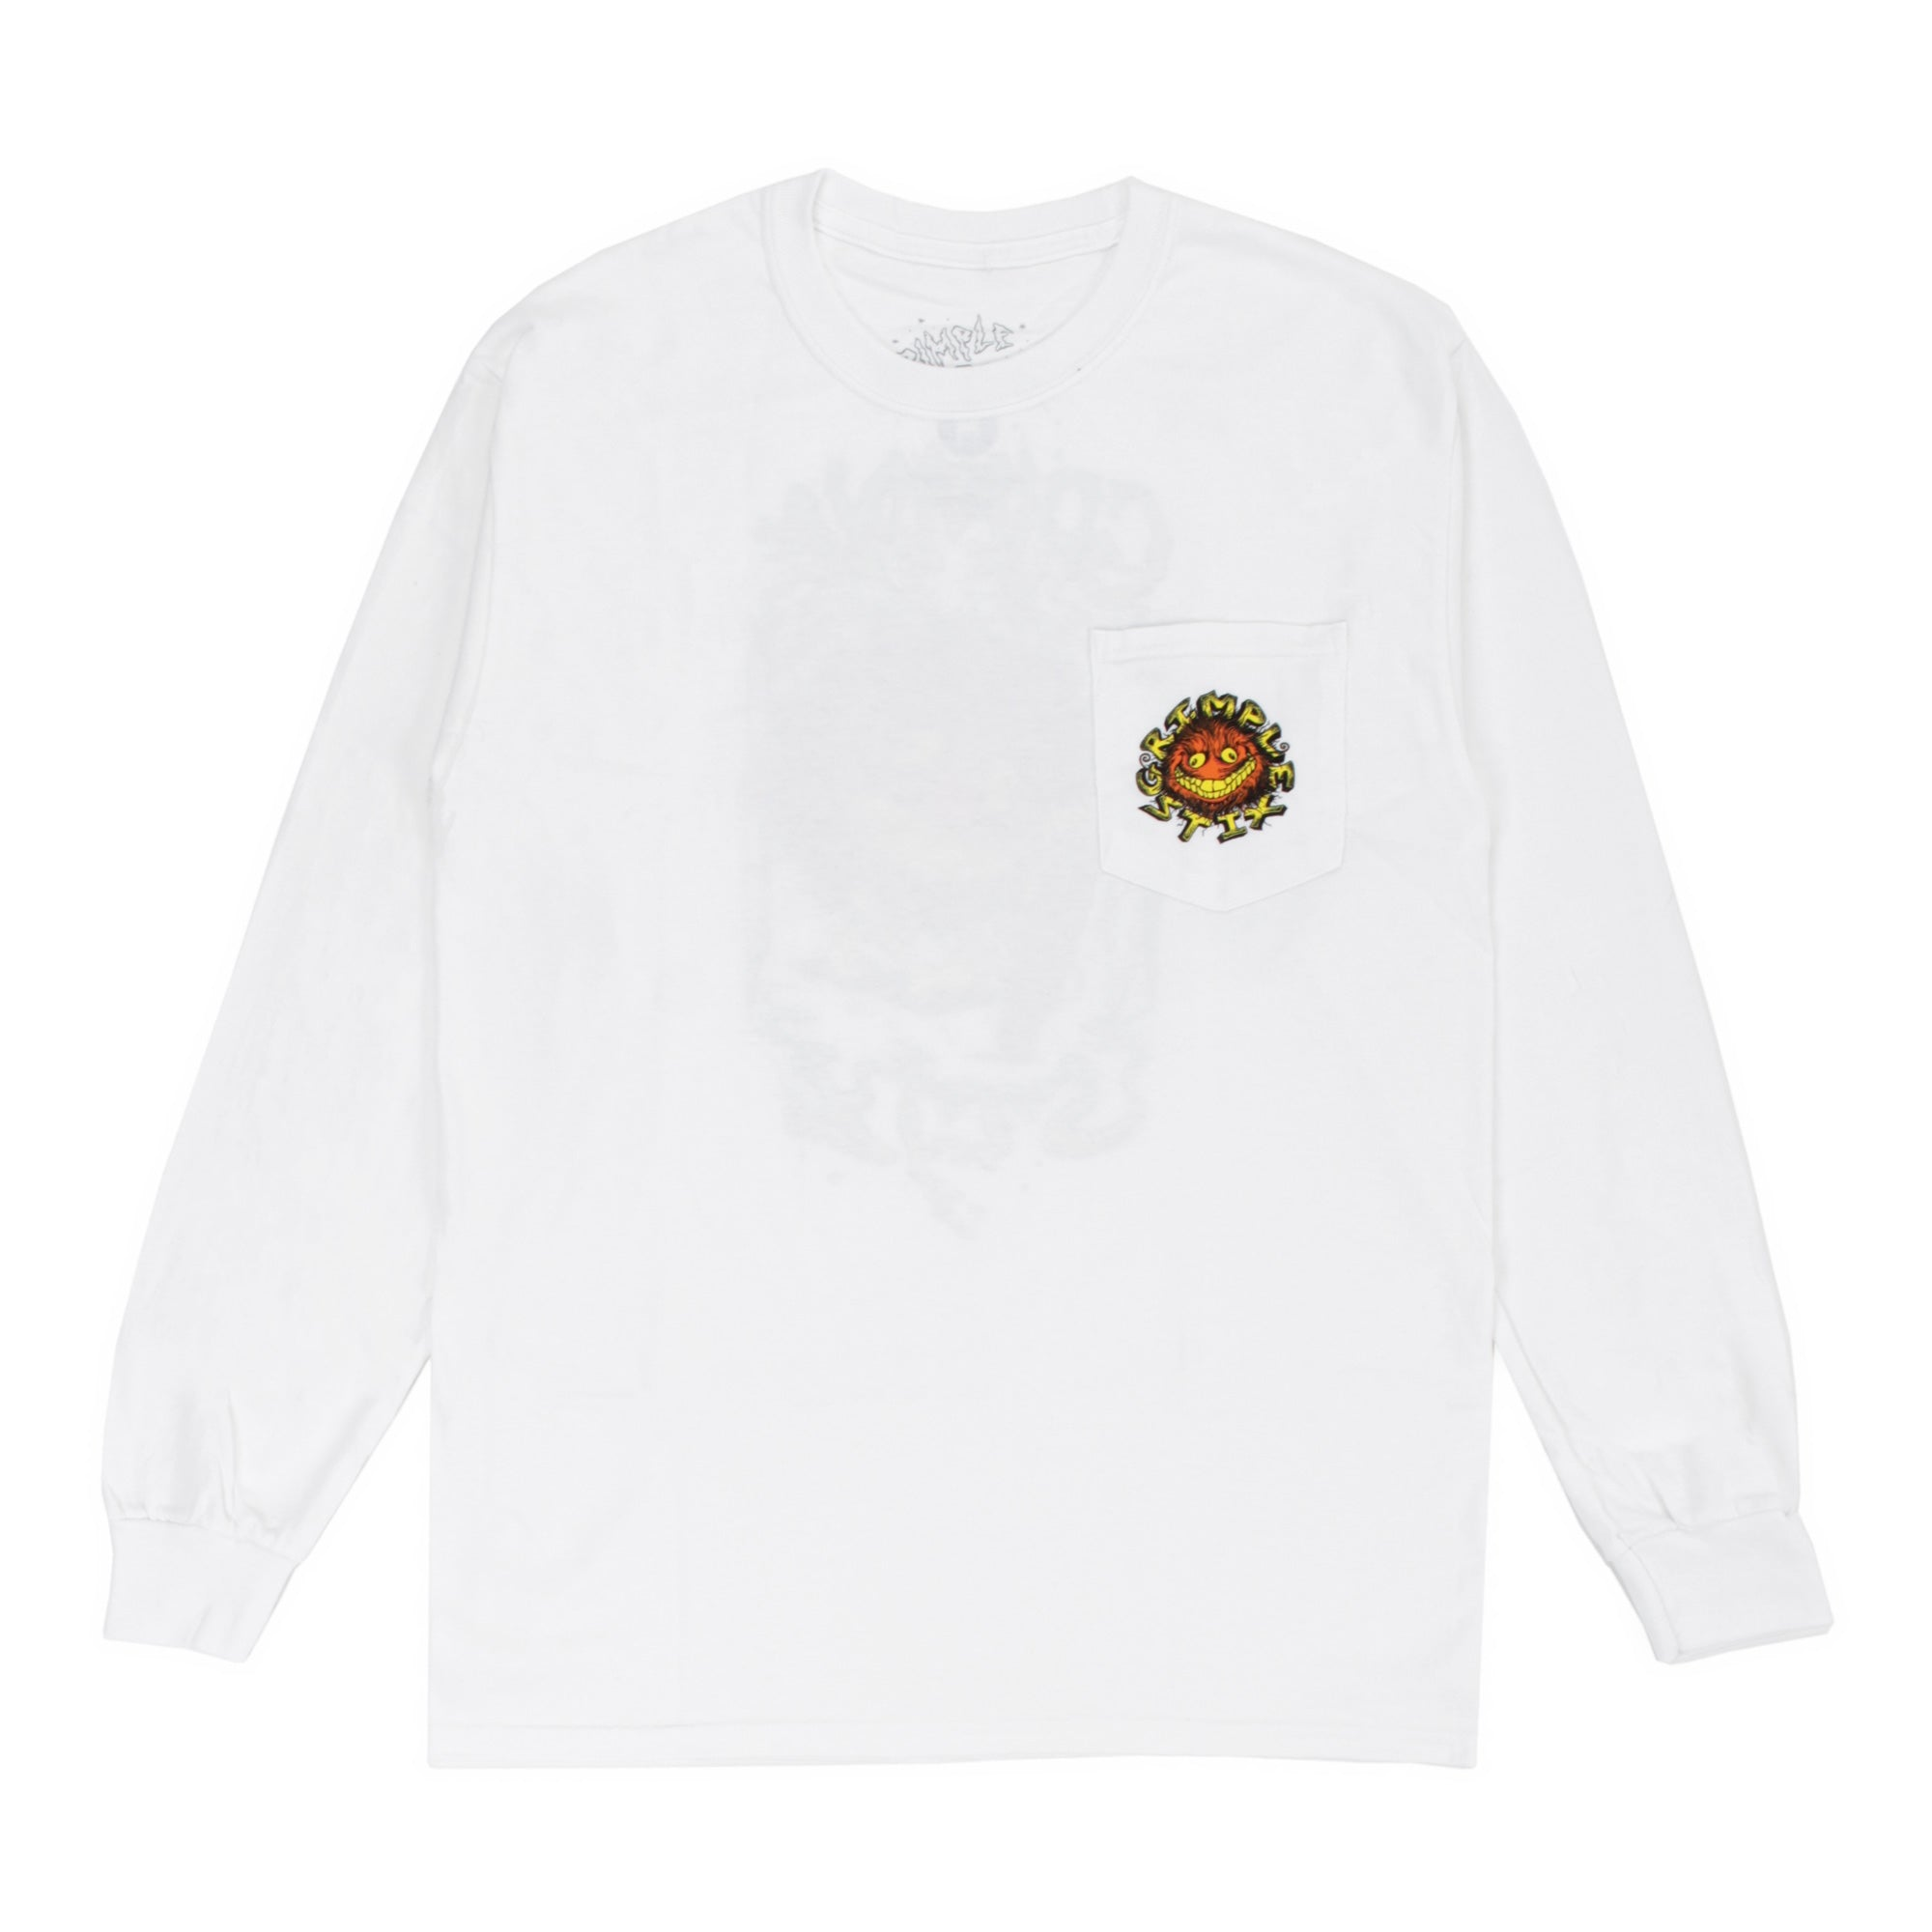 Anti-Hero Grimple Stix Key L/S Tee Product Photo #2